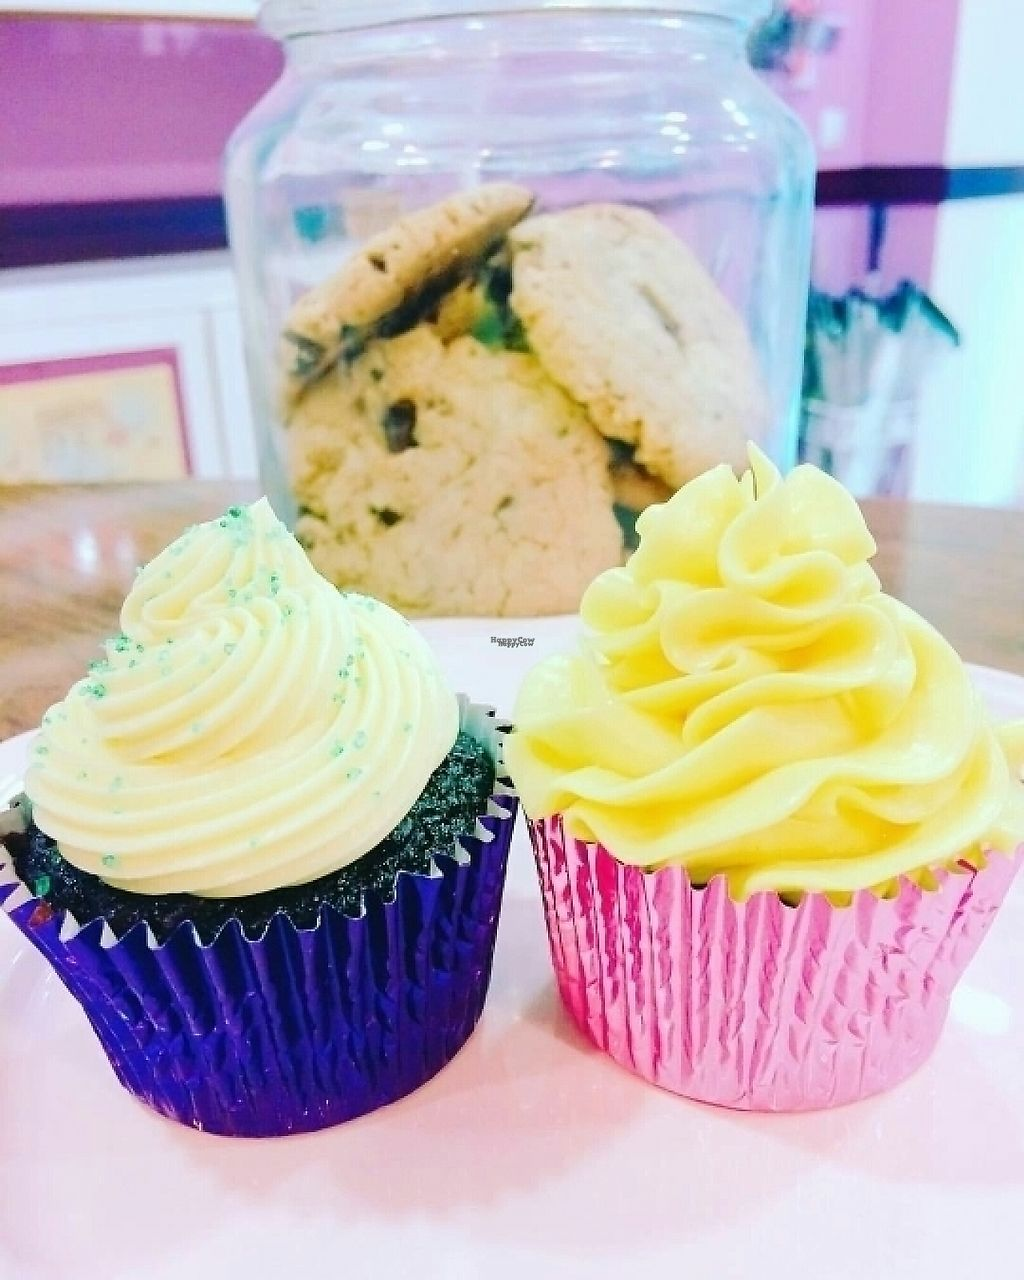 """Photo of CLOSED: Donde Viven las Tartas  by <a href=""""/members/profile/J%C3%A9ssicaP%C3%A9rezRueda"""">JéssicaPérezRueda</a> <br/>cupcakes  <br/> March 1, 2017  - <a href='/contact/abuse/image/87909/231402'>Report</a>"""